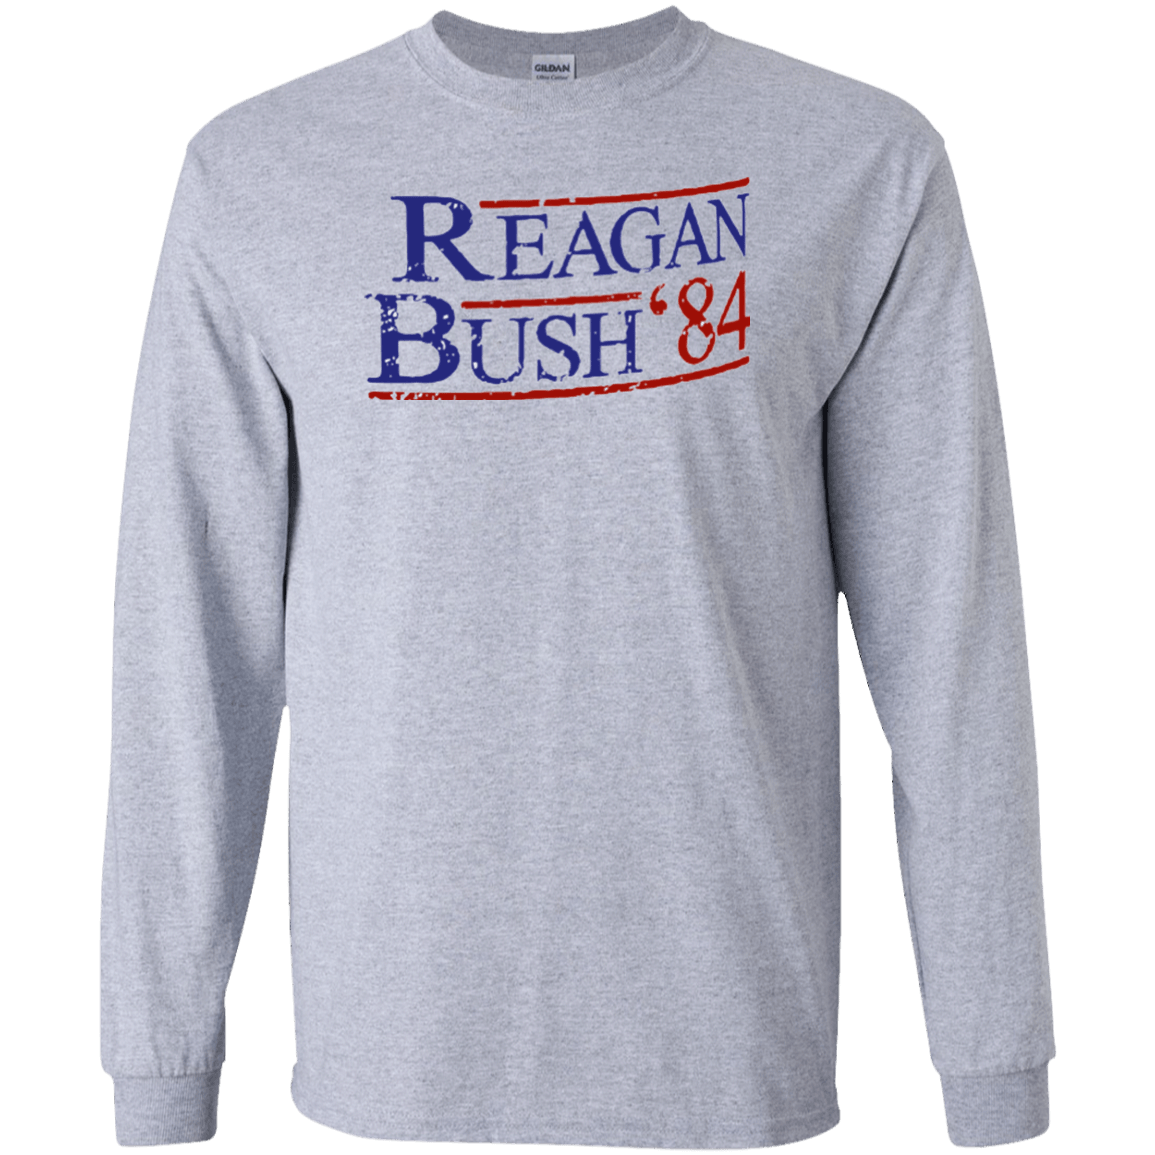 84 Reagan Bush Long Sleeve Grey Ultra Cotton T-Shirt - Generation T